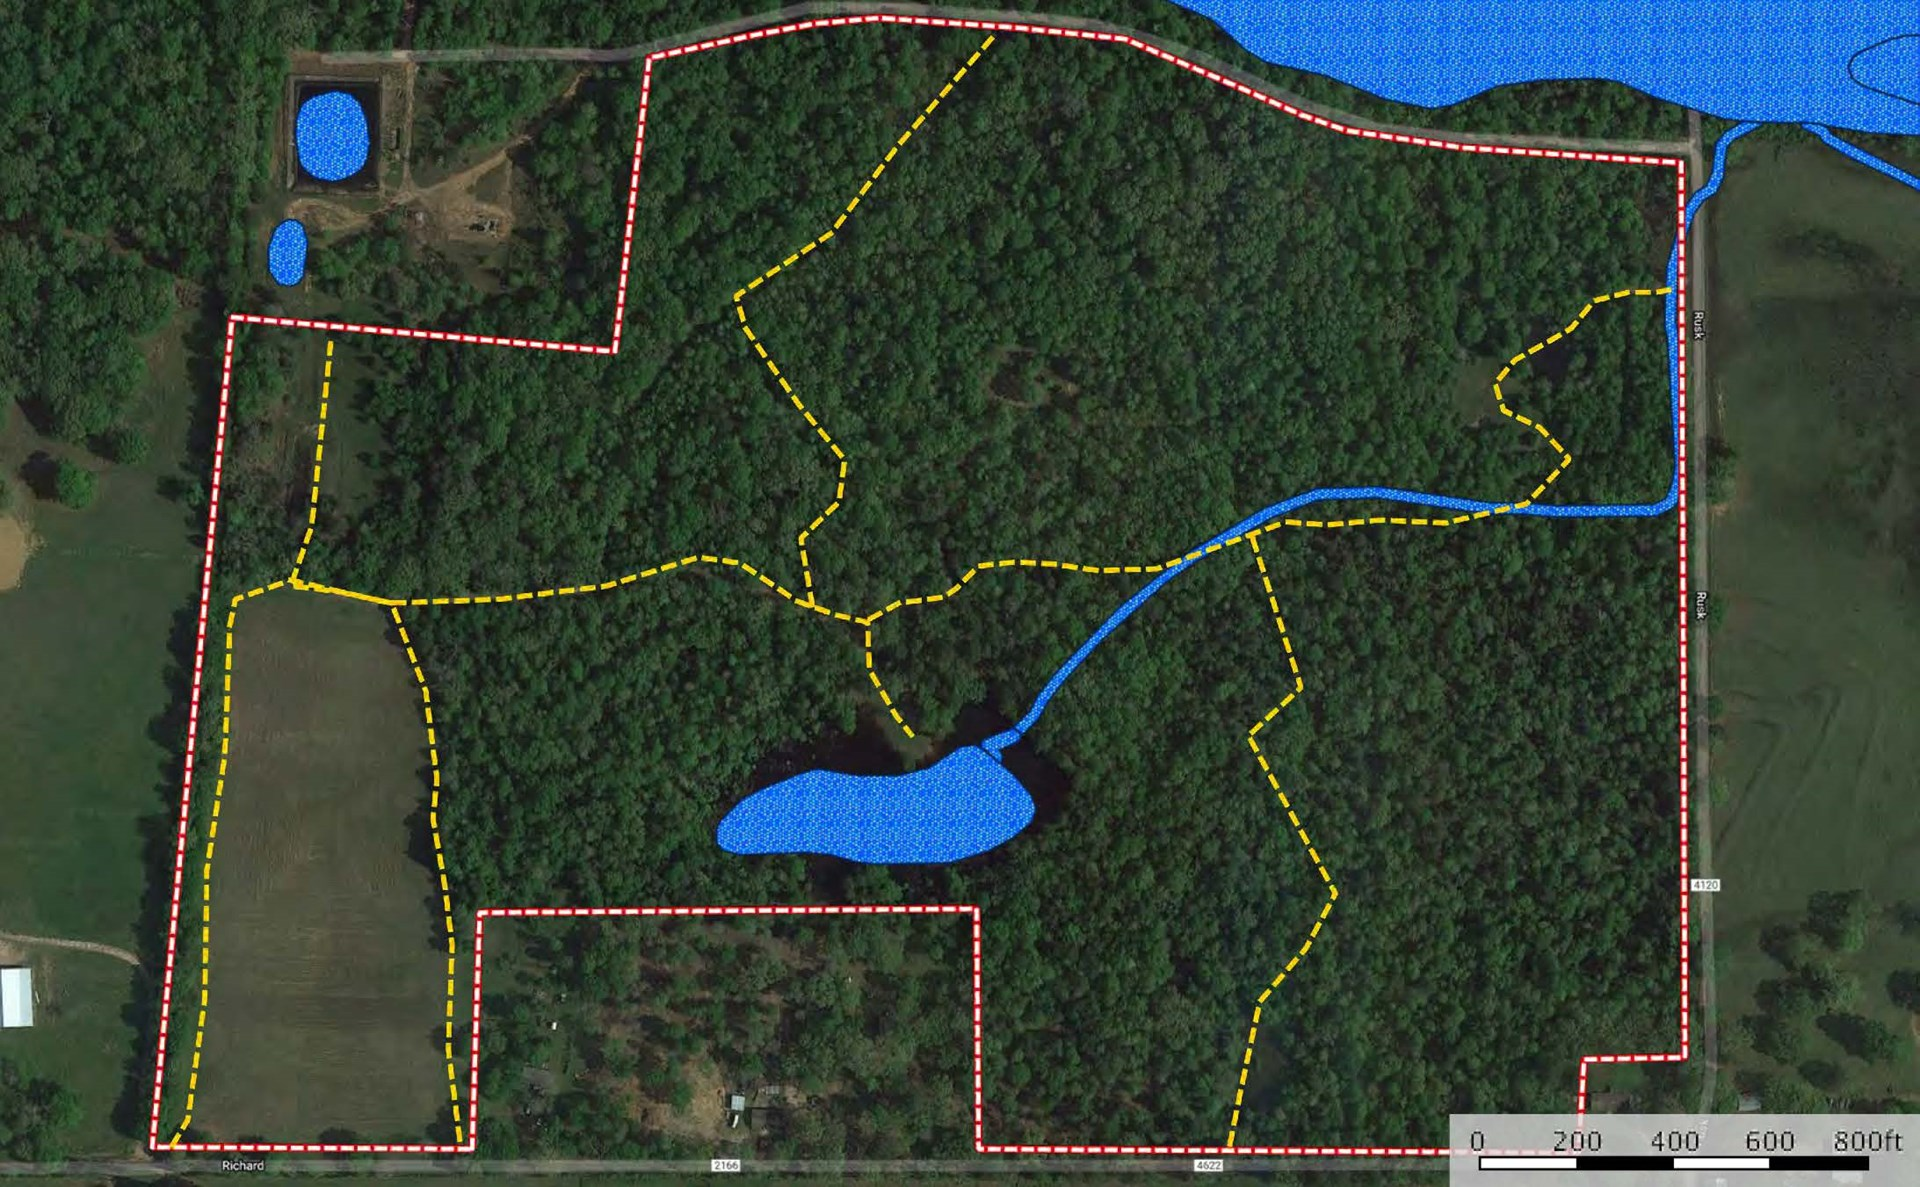 East Texas Recreational Hunting Land for Sale near Tyler TX